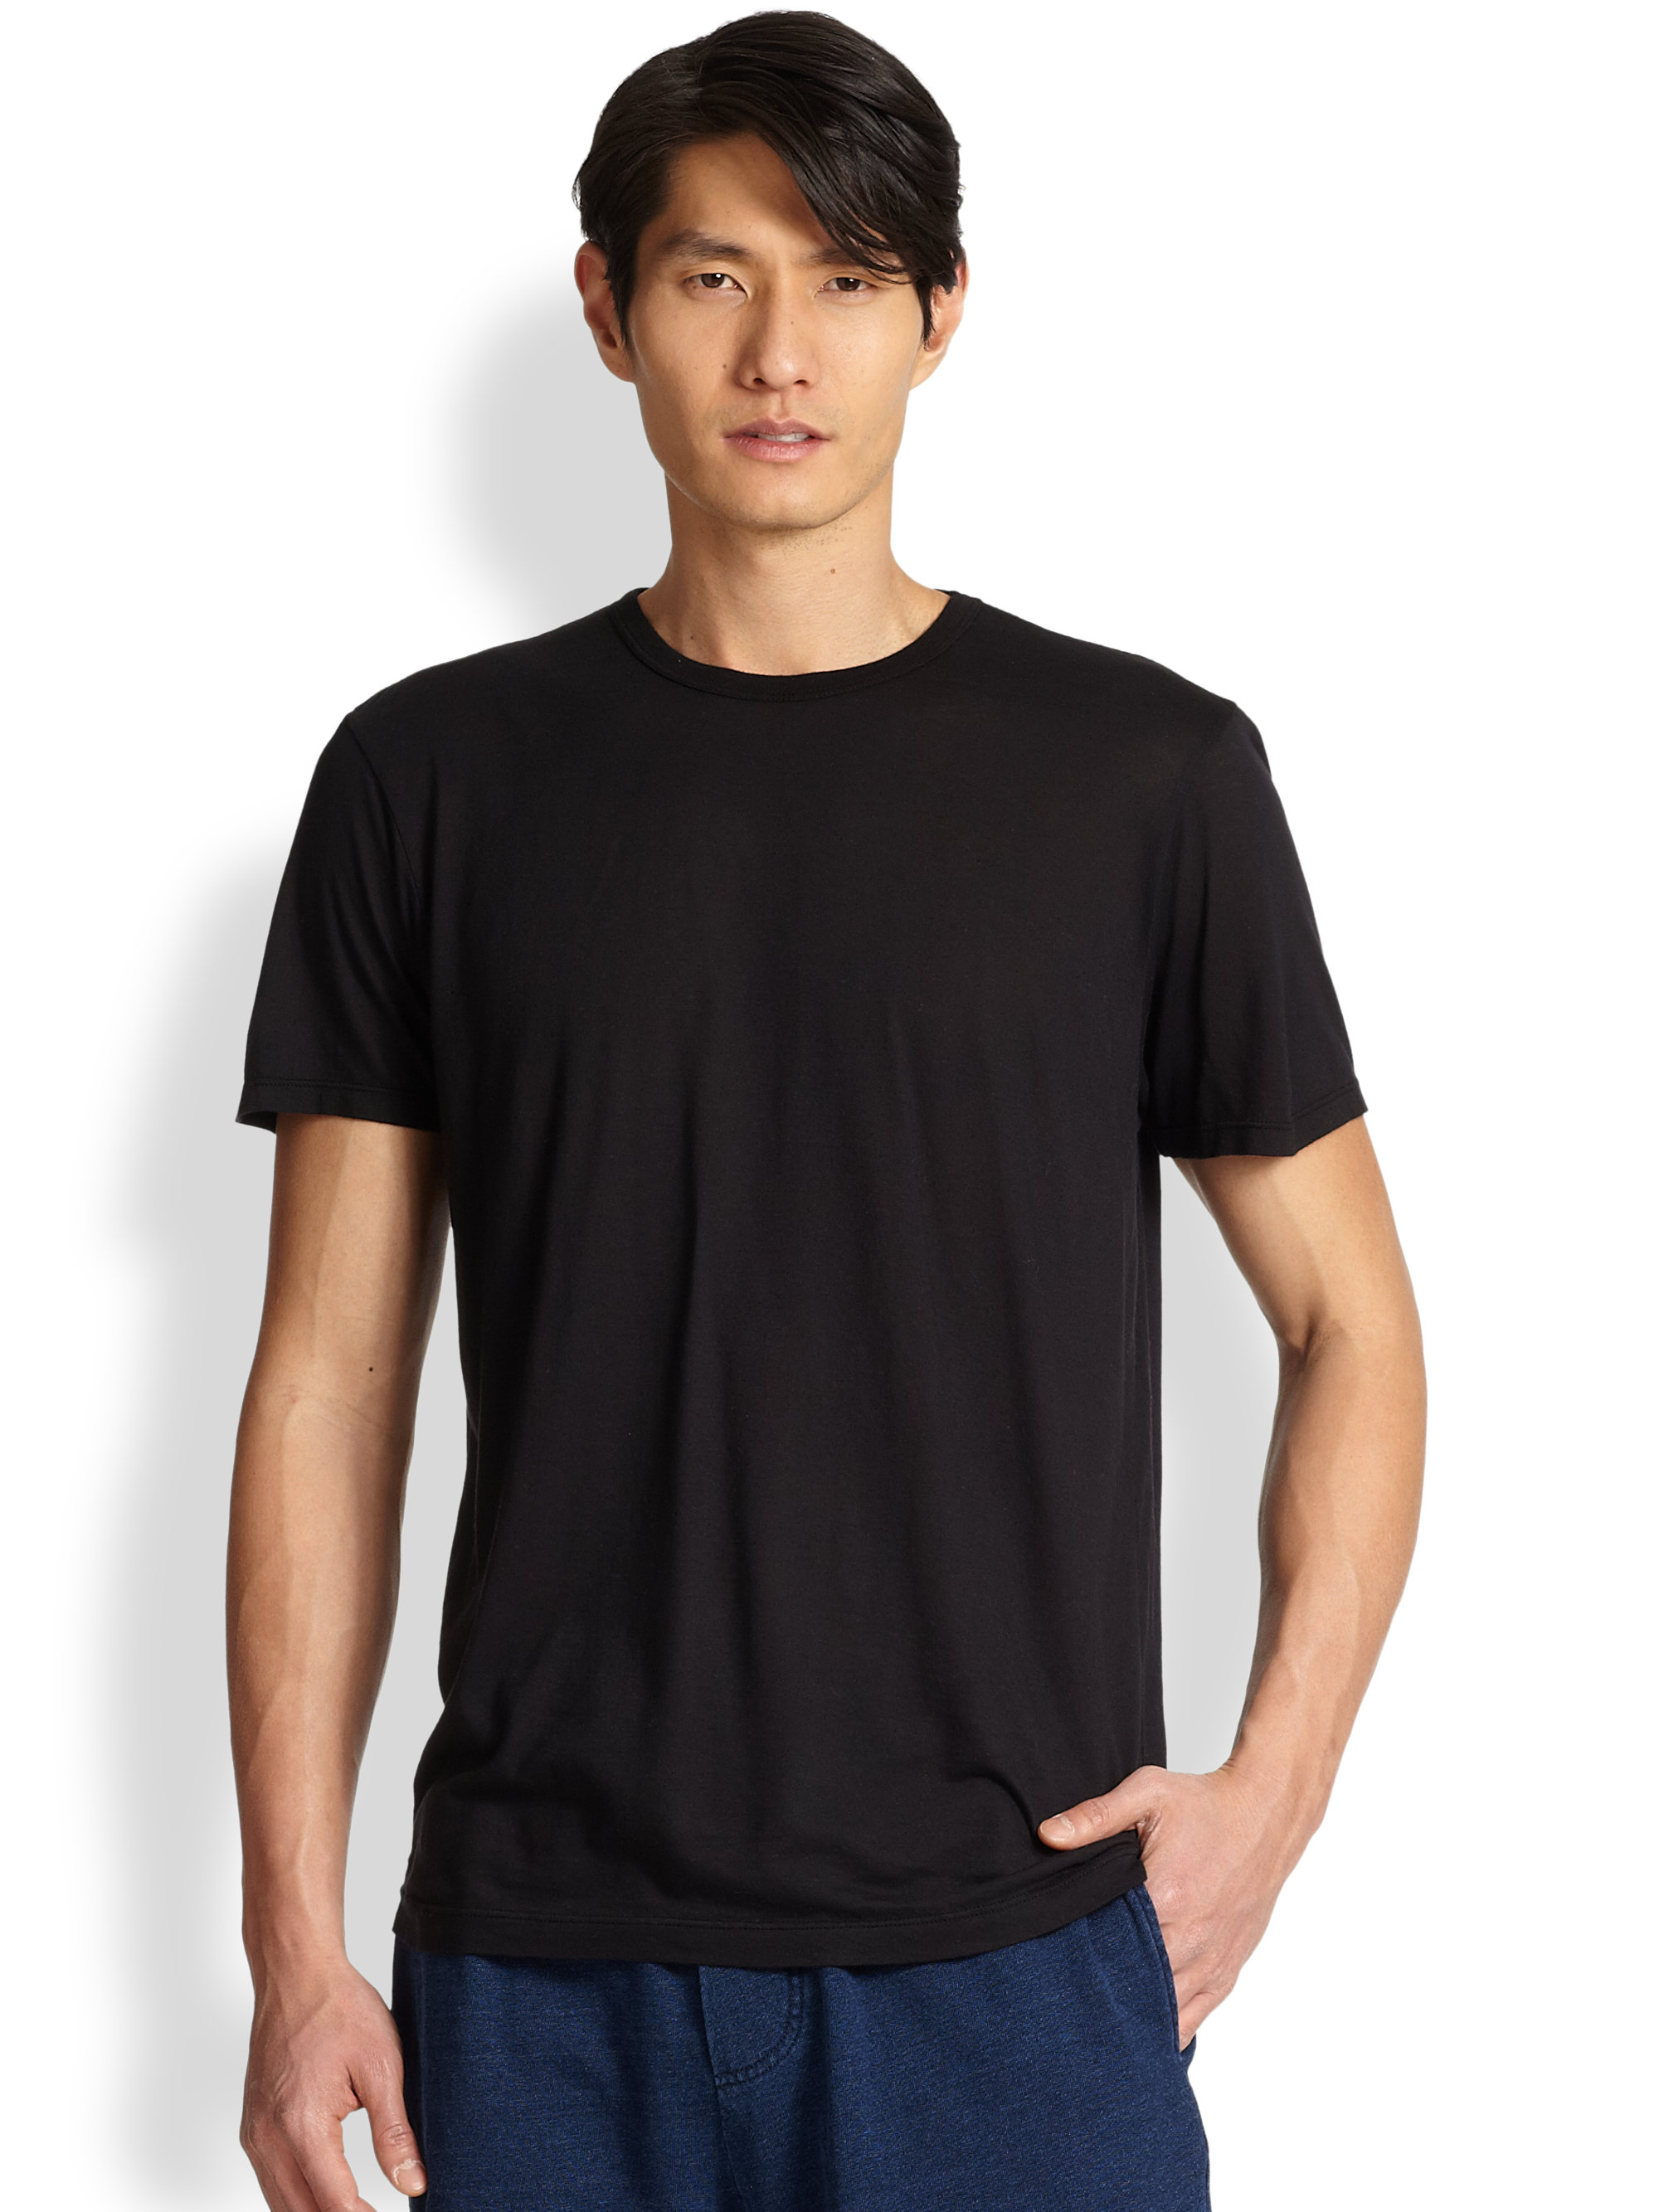 Splendid mills cotton modal crewneck tee in black for for Modal t shirts mens